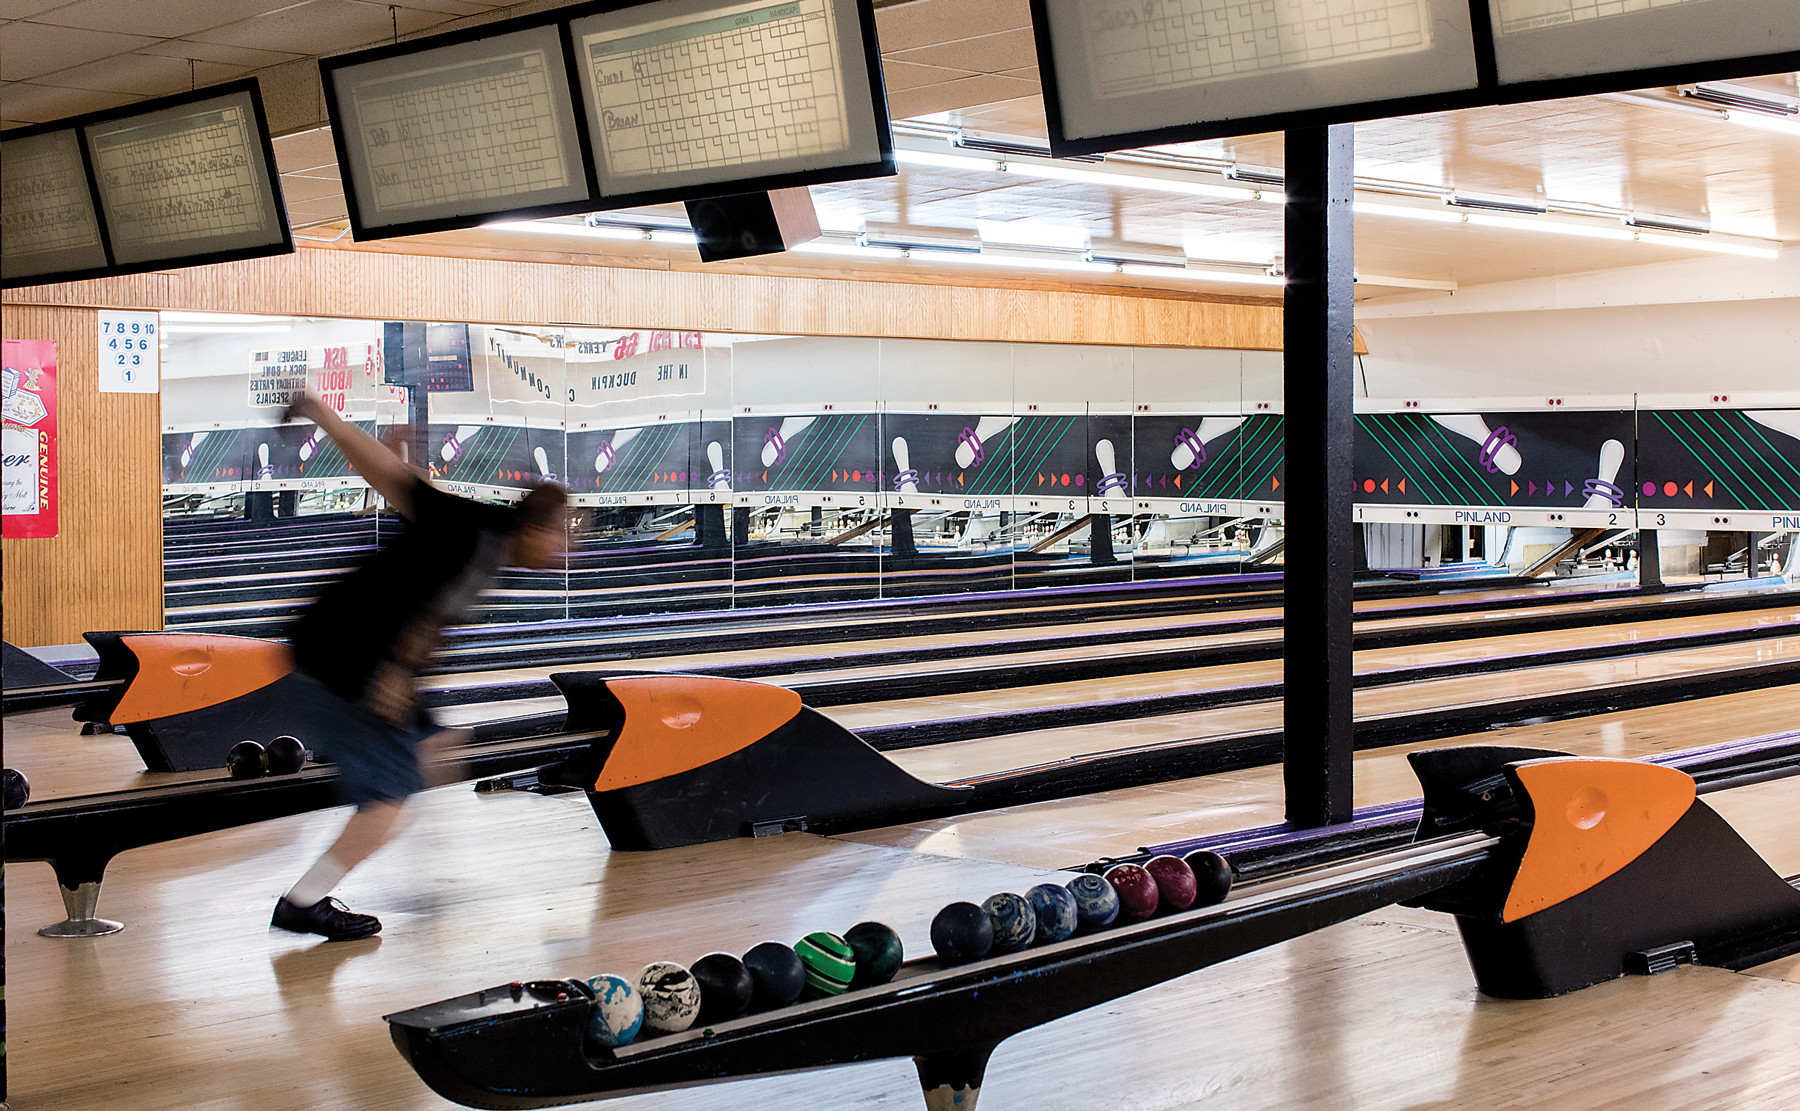 Hardwood Floor Store In Glen Burnie Md Of Duckpin Bowling In Baltimore Throughout S Marylanders Were All Familiar with the Clunking Thud Of A Small Round Ball Hitting A Hardwood Floor We Can Close Our Eyes and Hear the Clattering sound